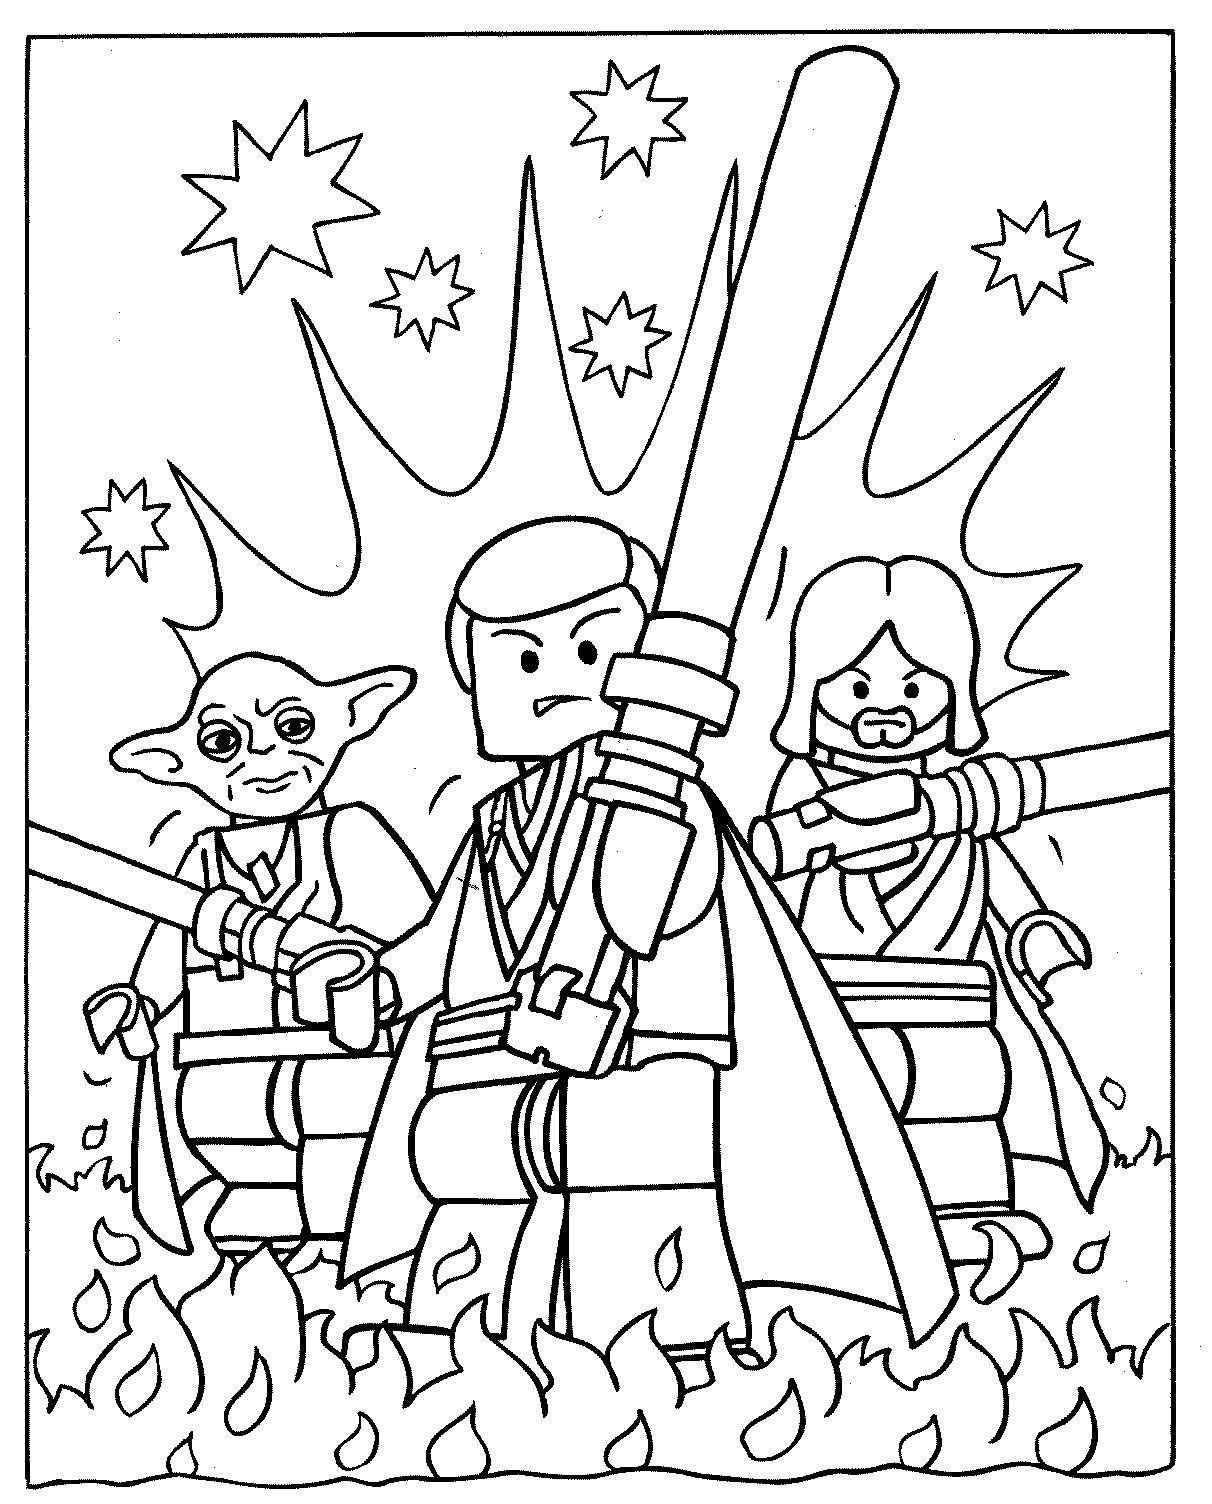 Lego coloring pages to print Coloring Pages Pictures IMAGIXS